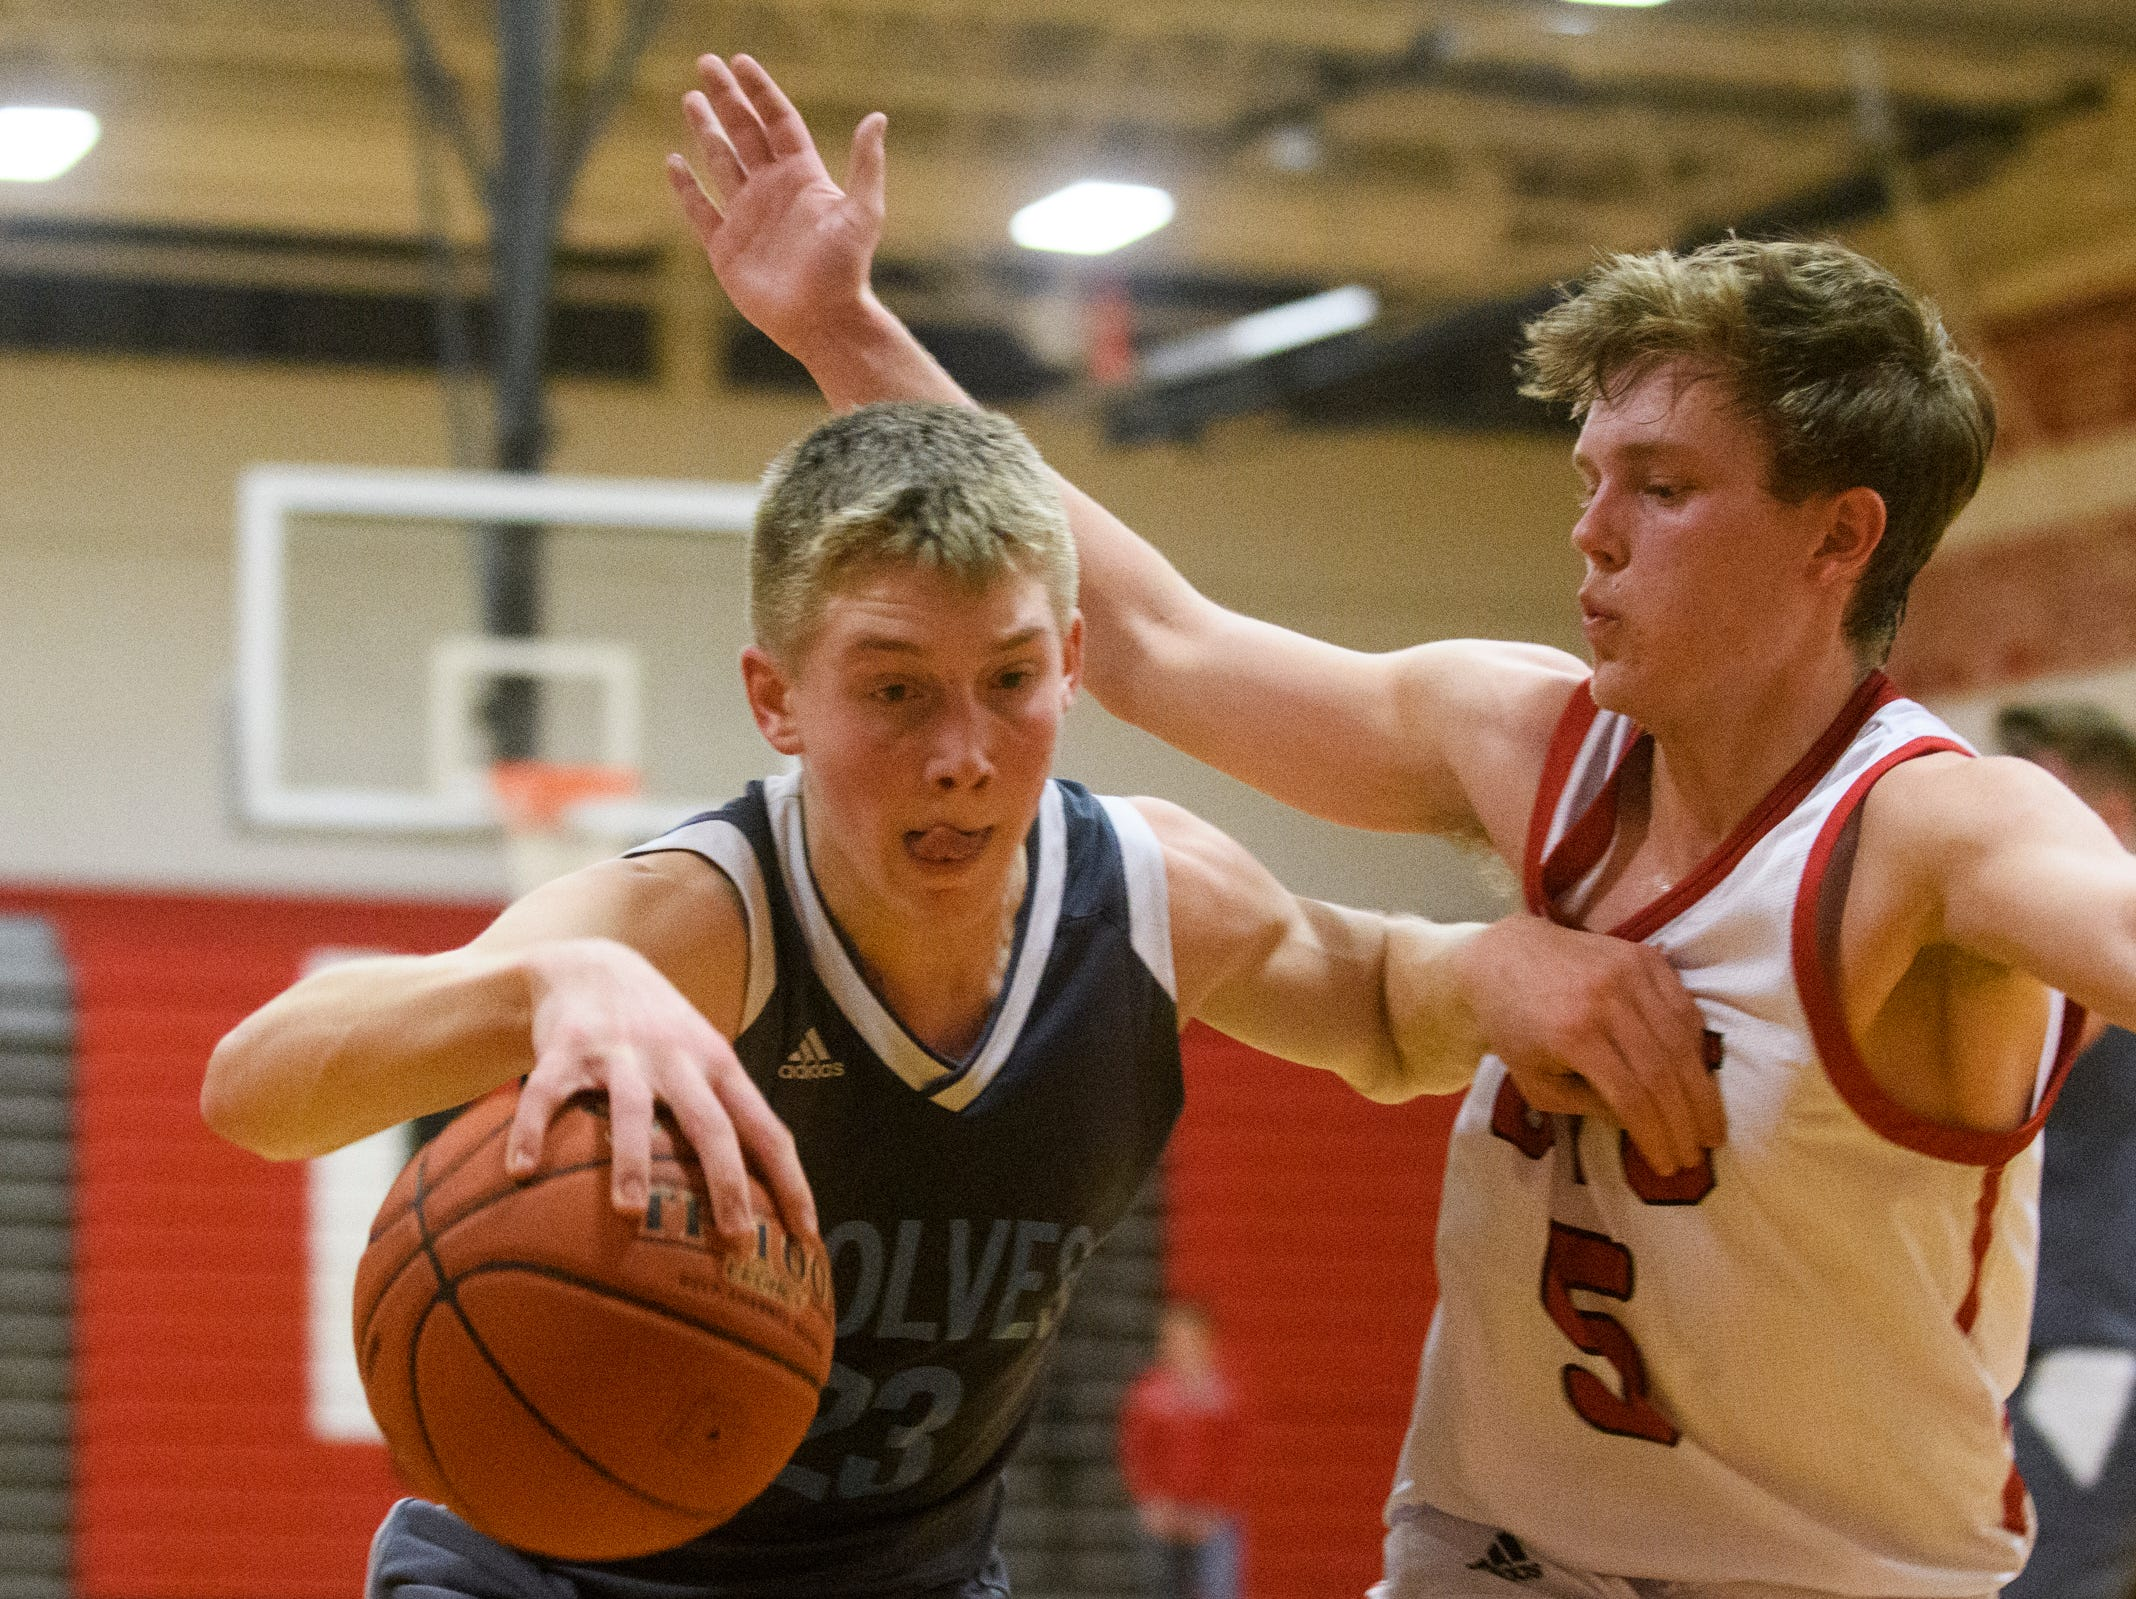 CVU's Ethan Harvey (5) guards South Burlington's Tyler Gammon (23) during the boys basketball game between he South Burlington Wolves and the Champlain Valley Union Redhawks at CVU High School on Tuesday night March 5, 2019 in Hinesburg, Vermont.